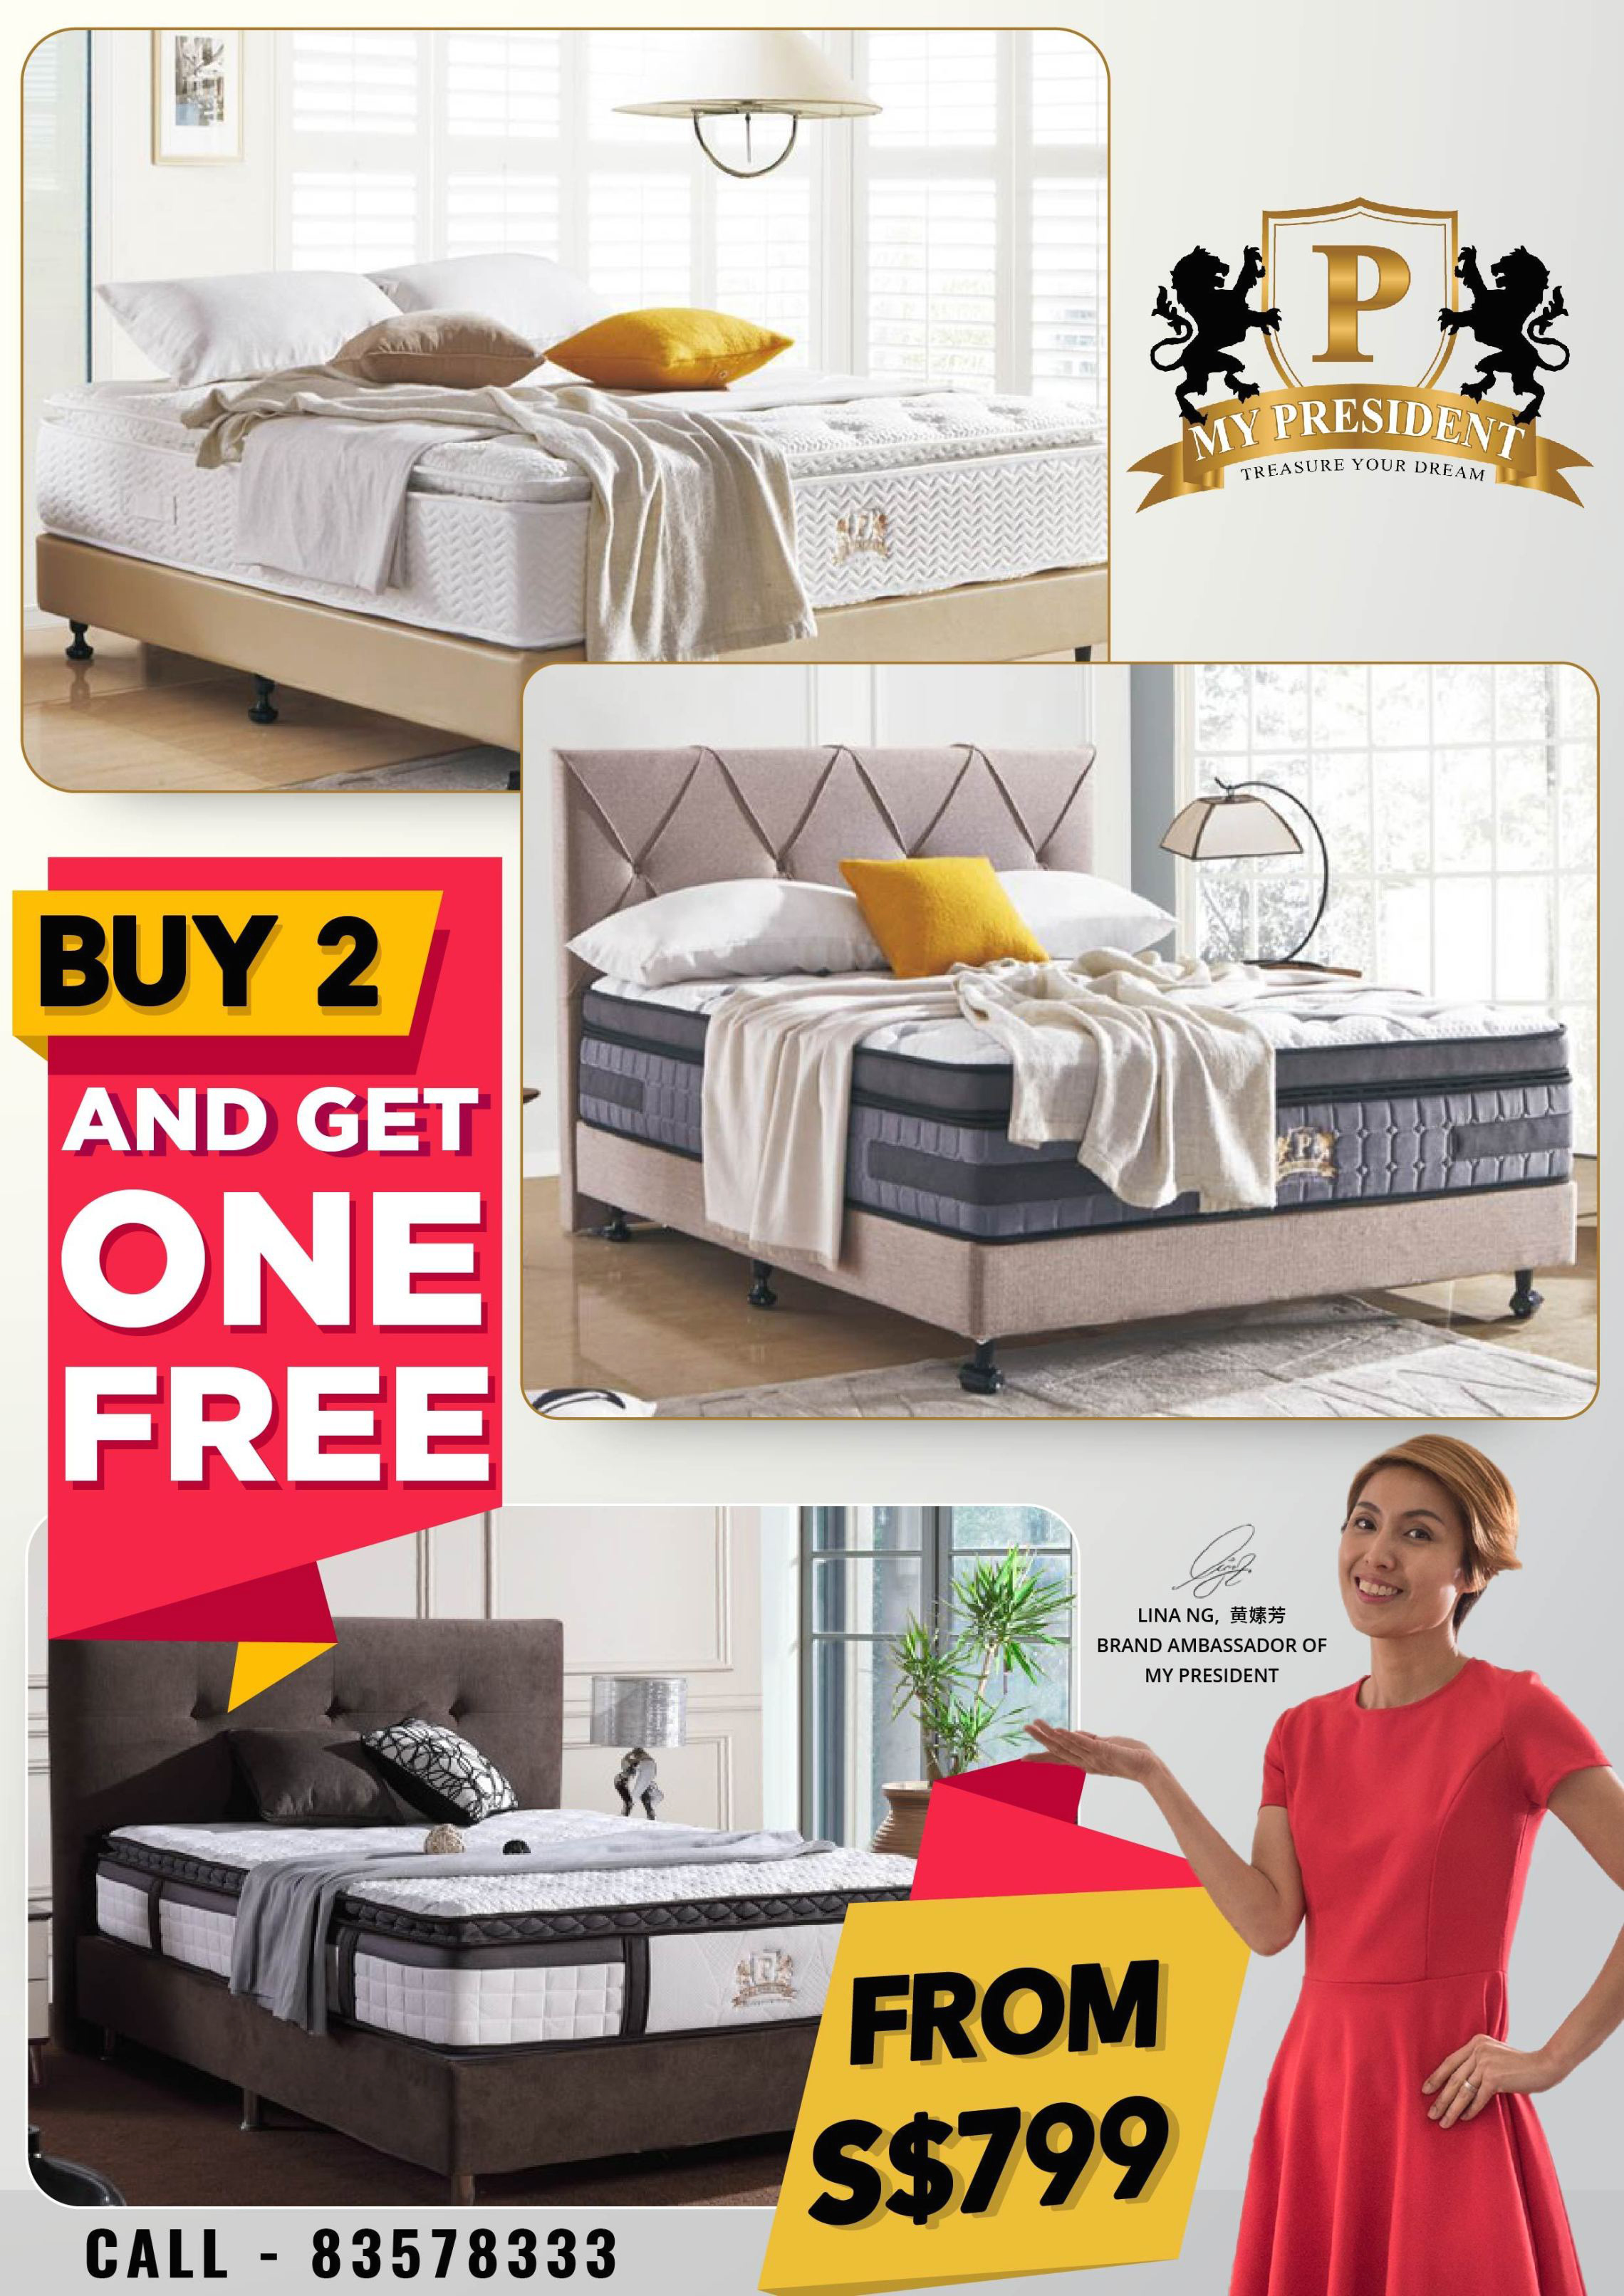 mattress_hari_raya_group_buy_promotions_799